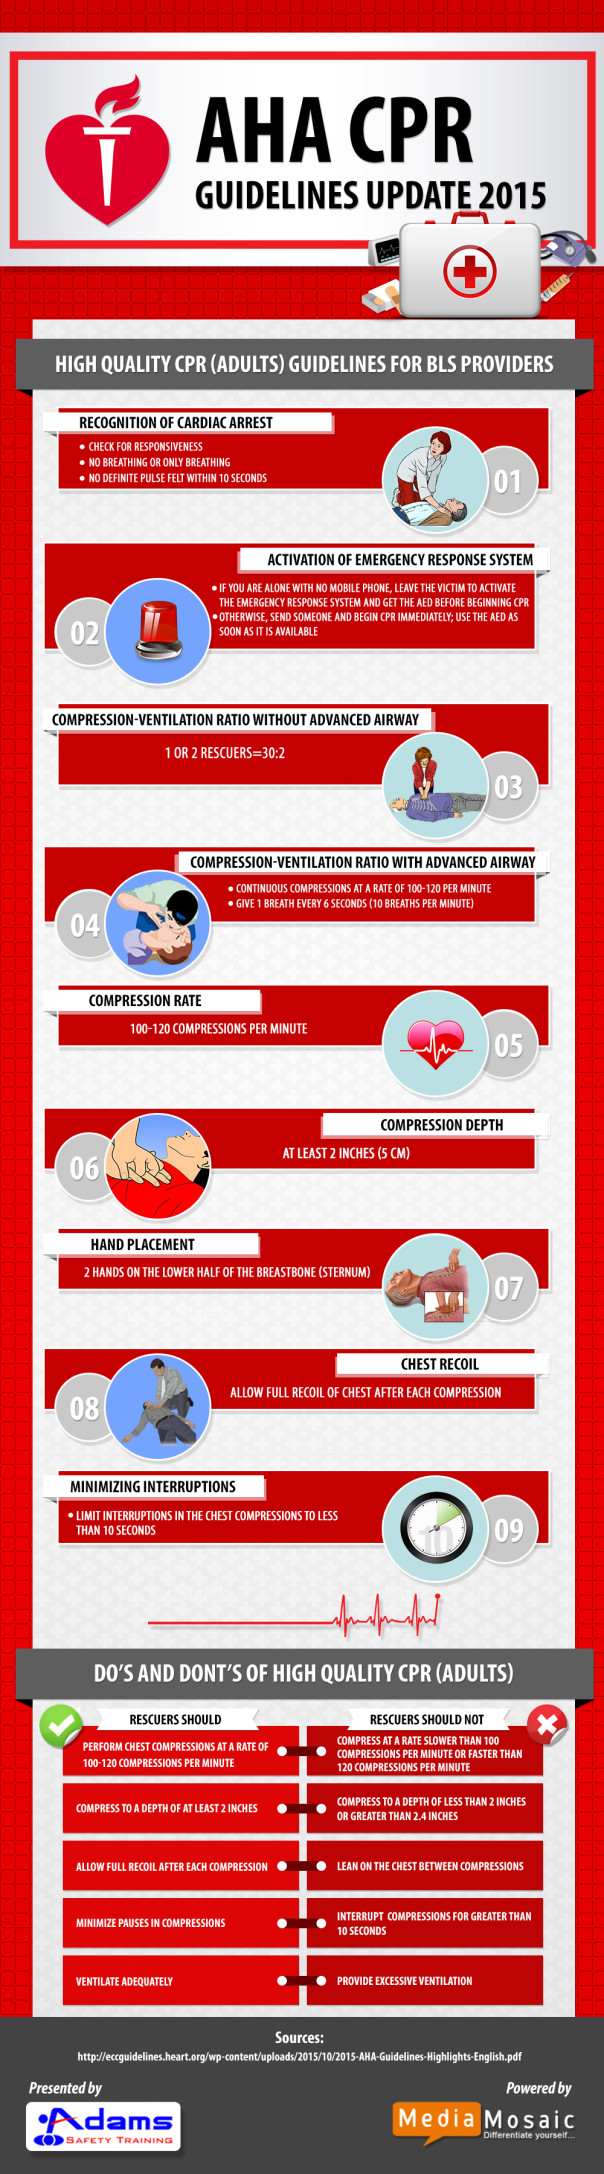 2018 Aha Guidelines Update For Cpr